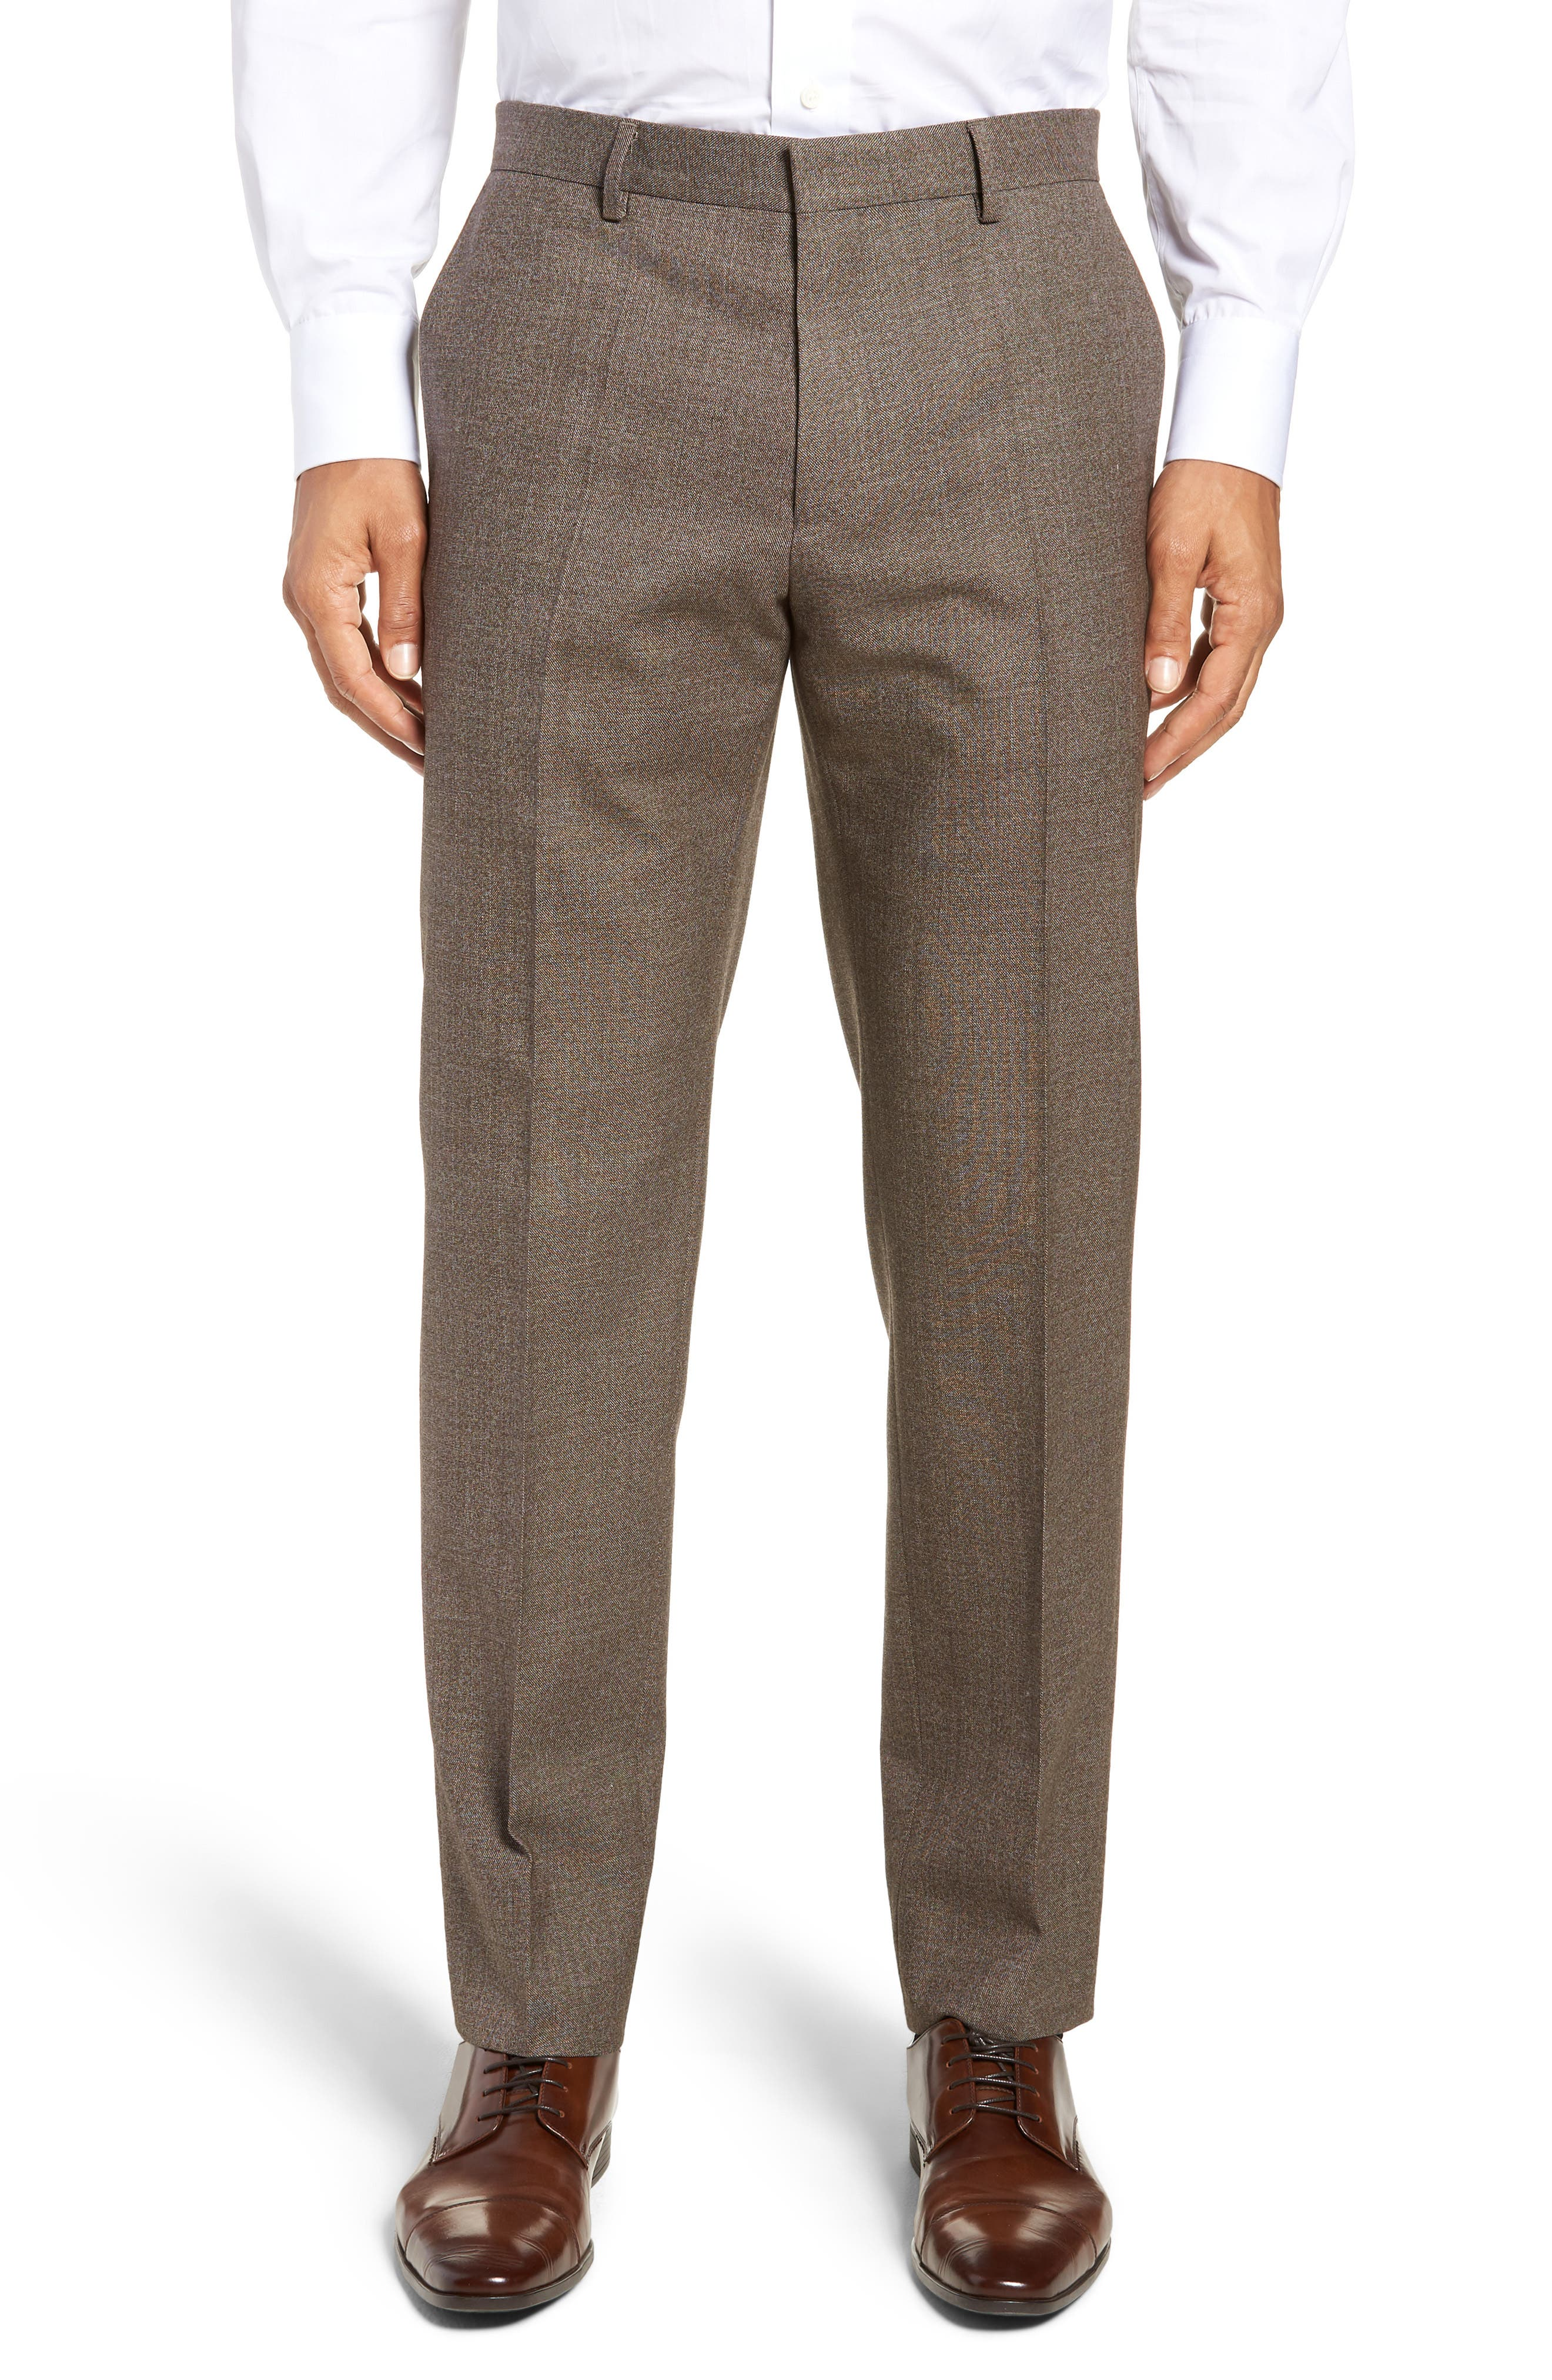 Giro Flat Front Solid Wool & Cotton Trousers,                         Main,                         color, LIGHT/ PASTEL BROWN